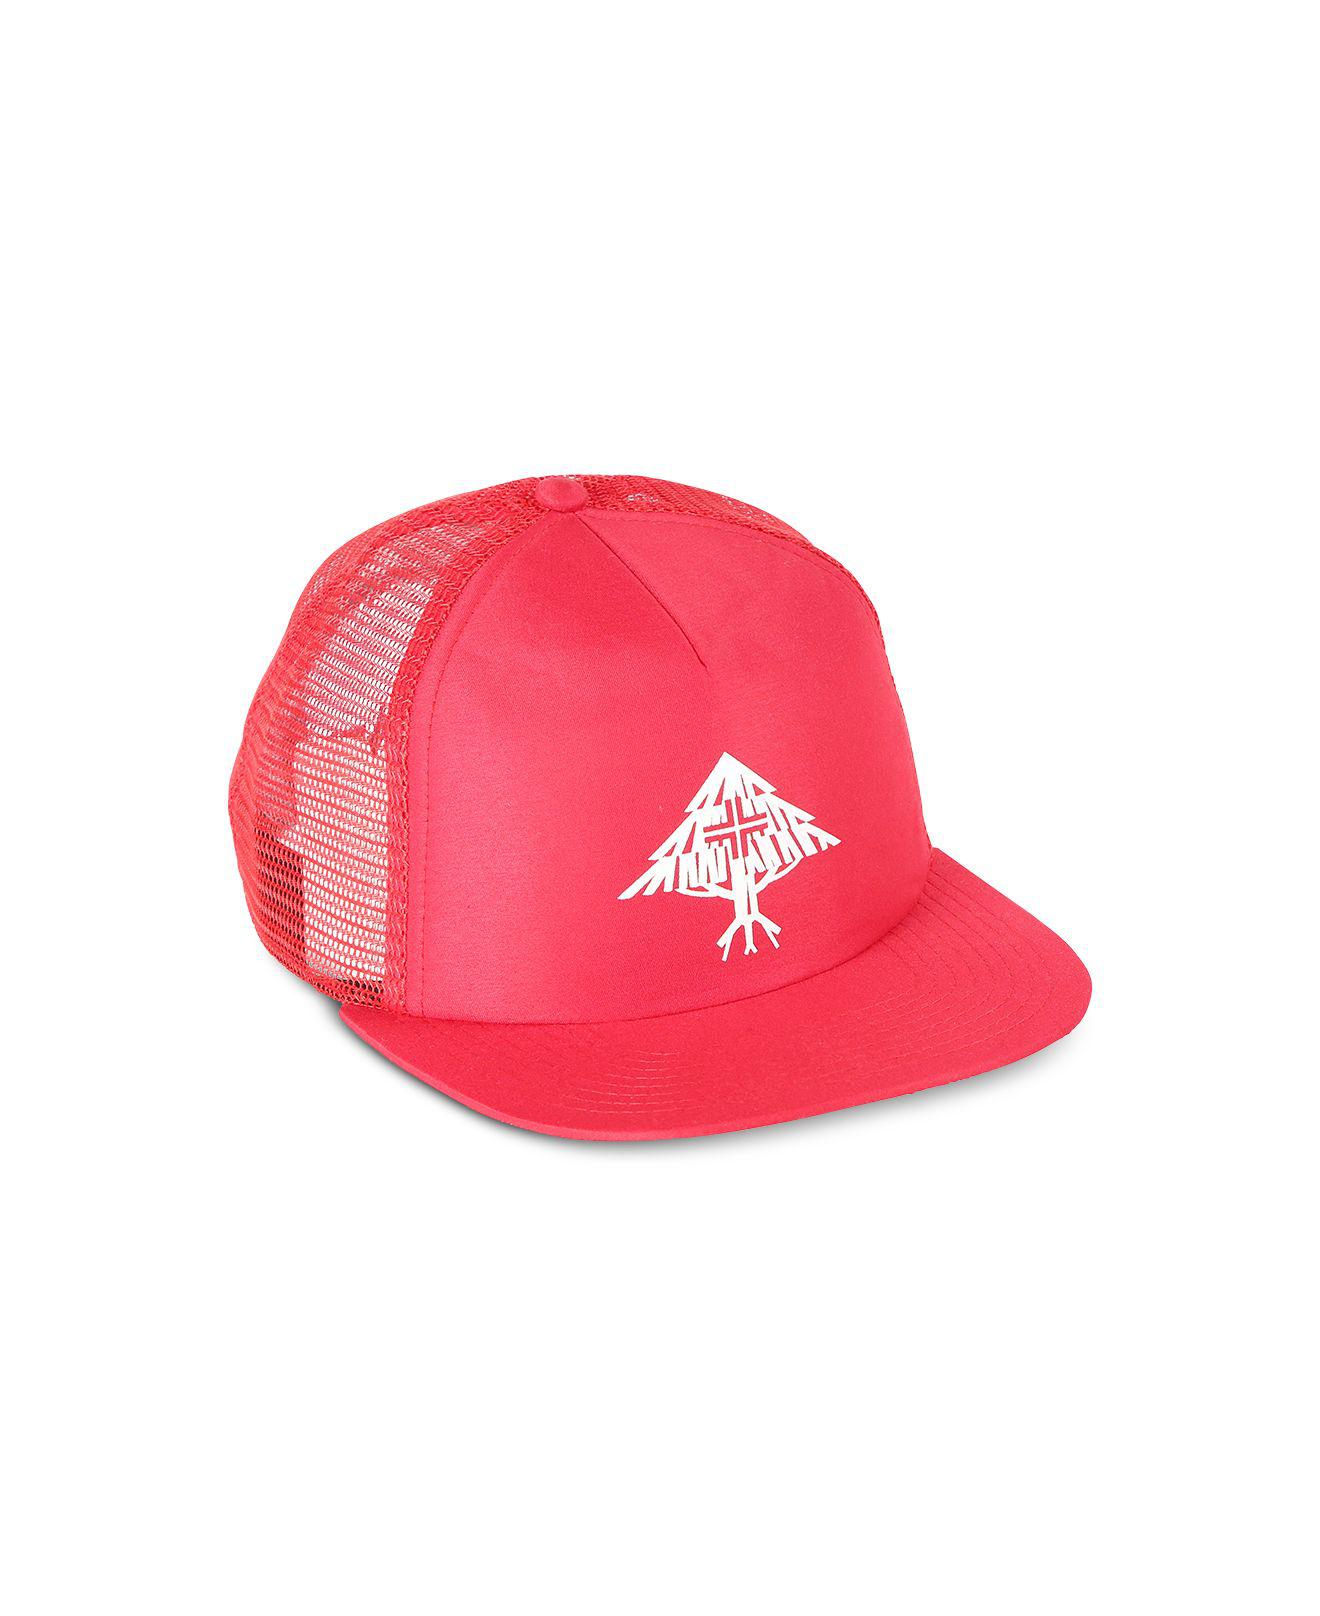 4aa0af484fb Lyst - LRG Nature Roots Snapback Trucker Hat in Red for Men